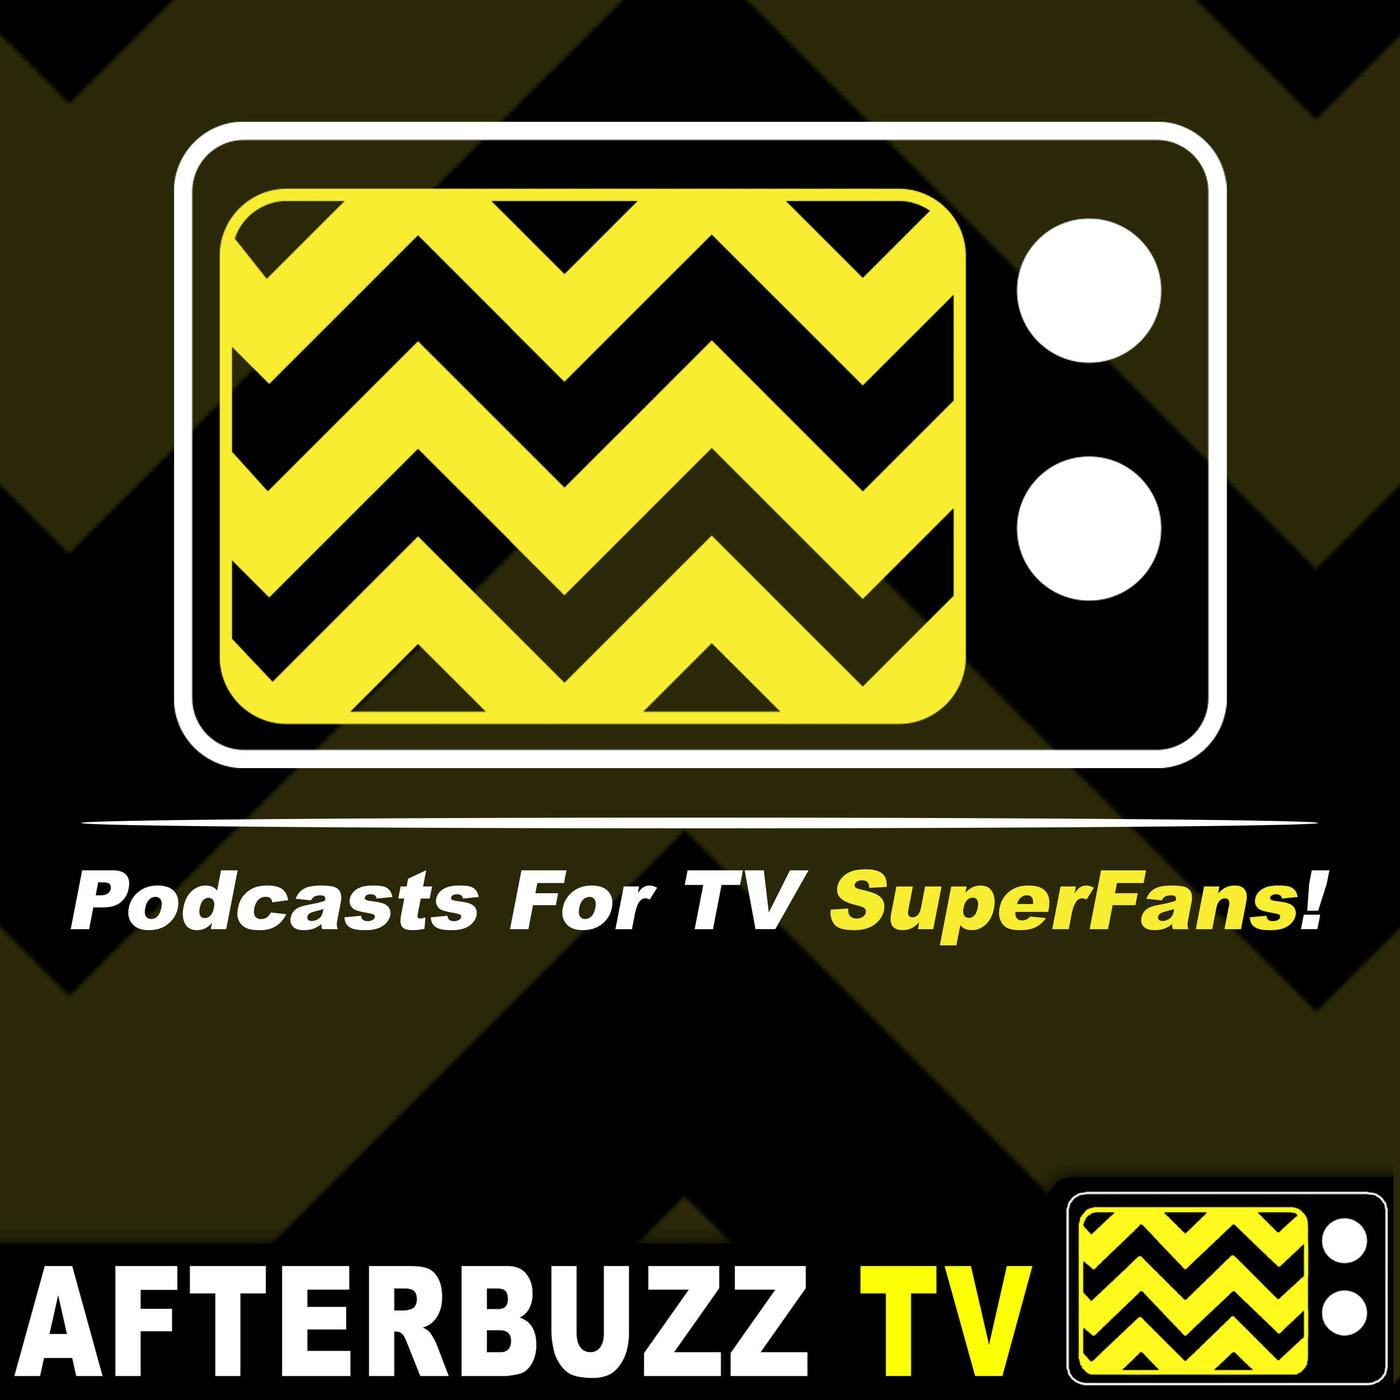 TV Reviews - Podcasts For ALL TV Superfans - AfterBuzz TV Network